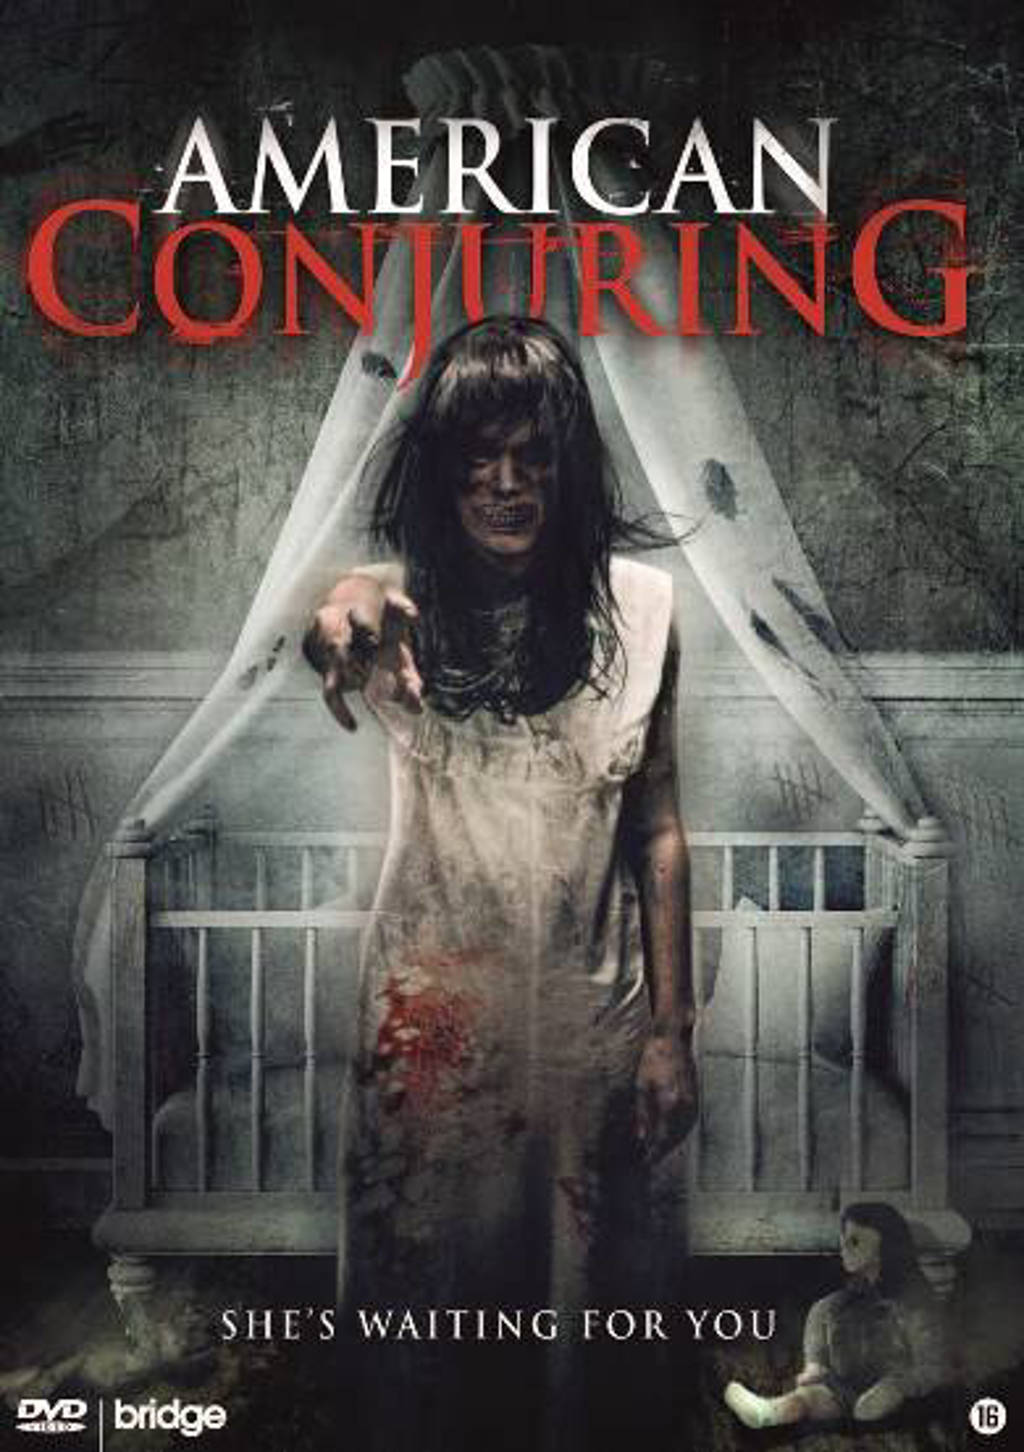 American conjuring (DVD)